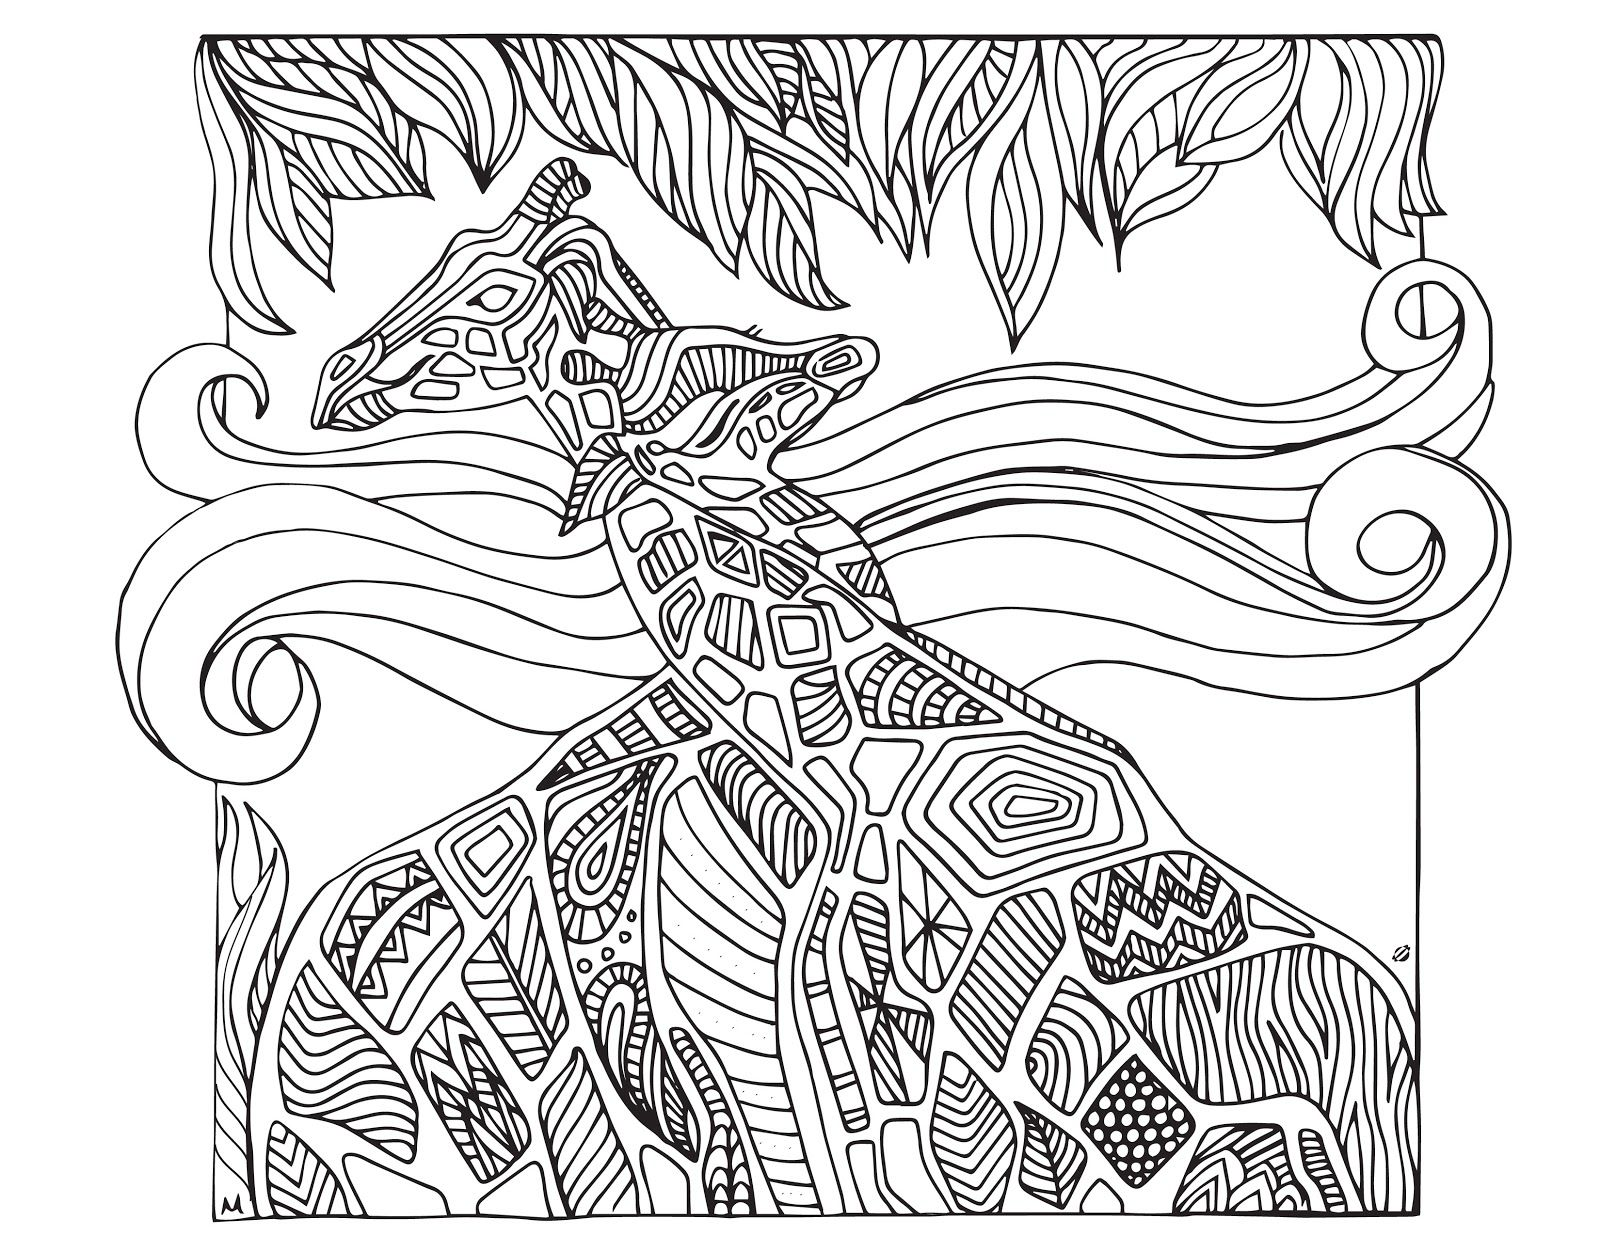 grown up colouring sheets giraffes - Free Coloring Books By Mail